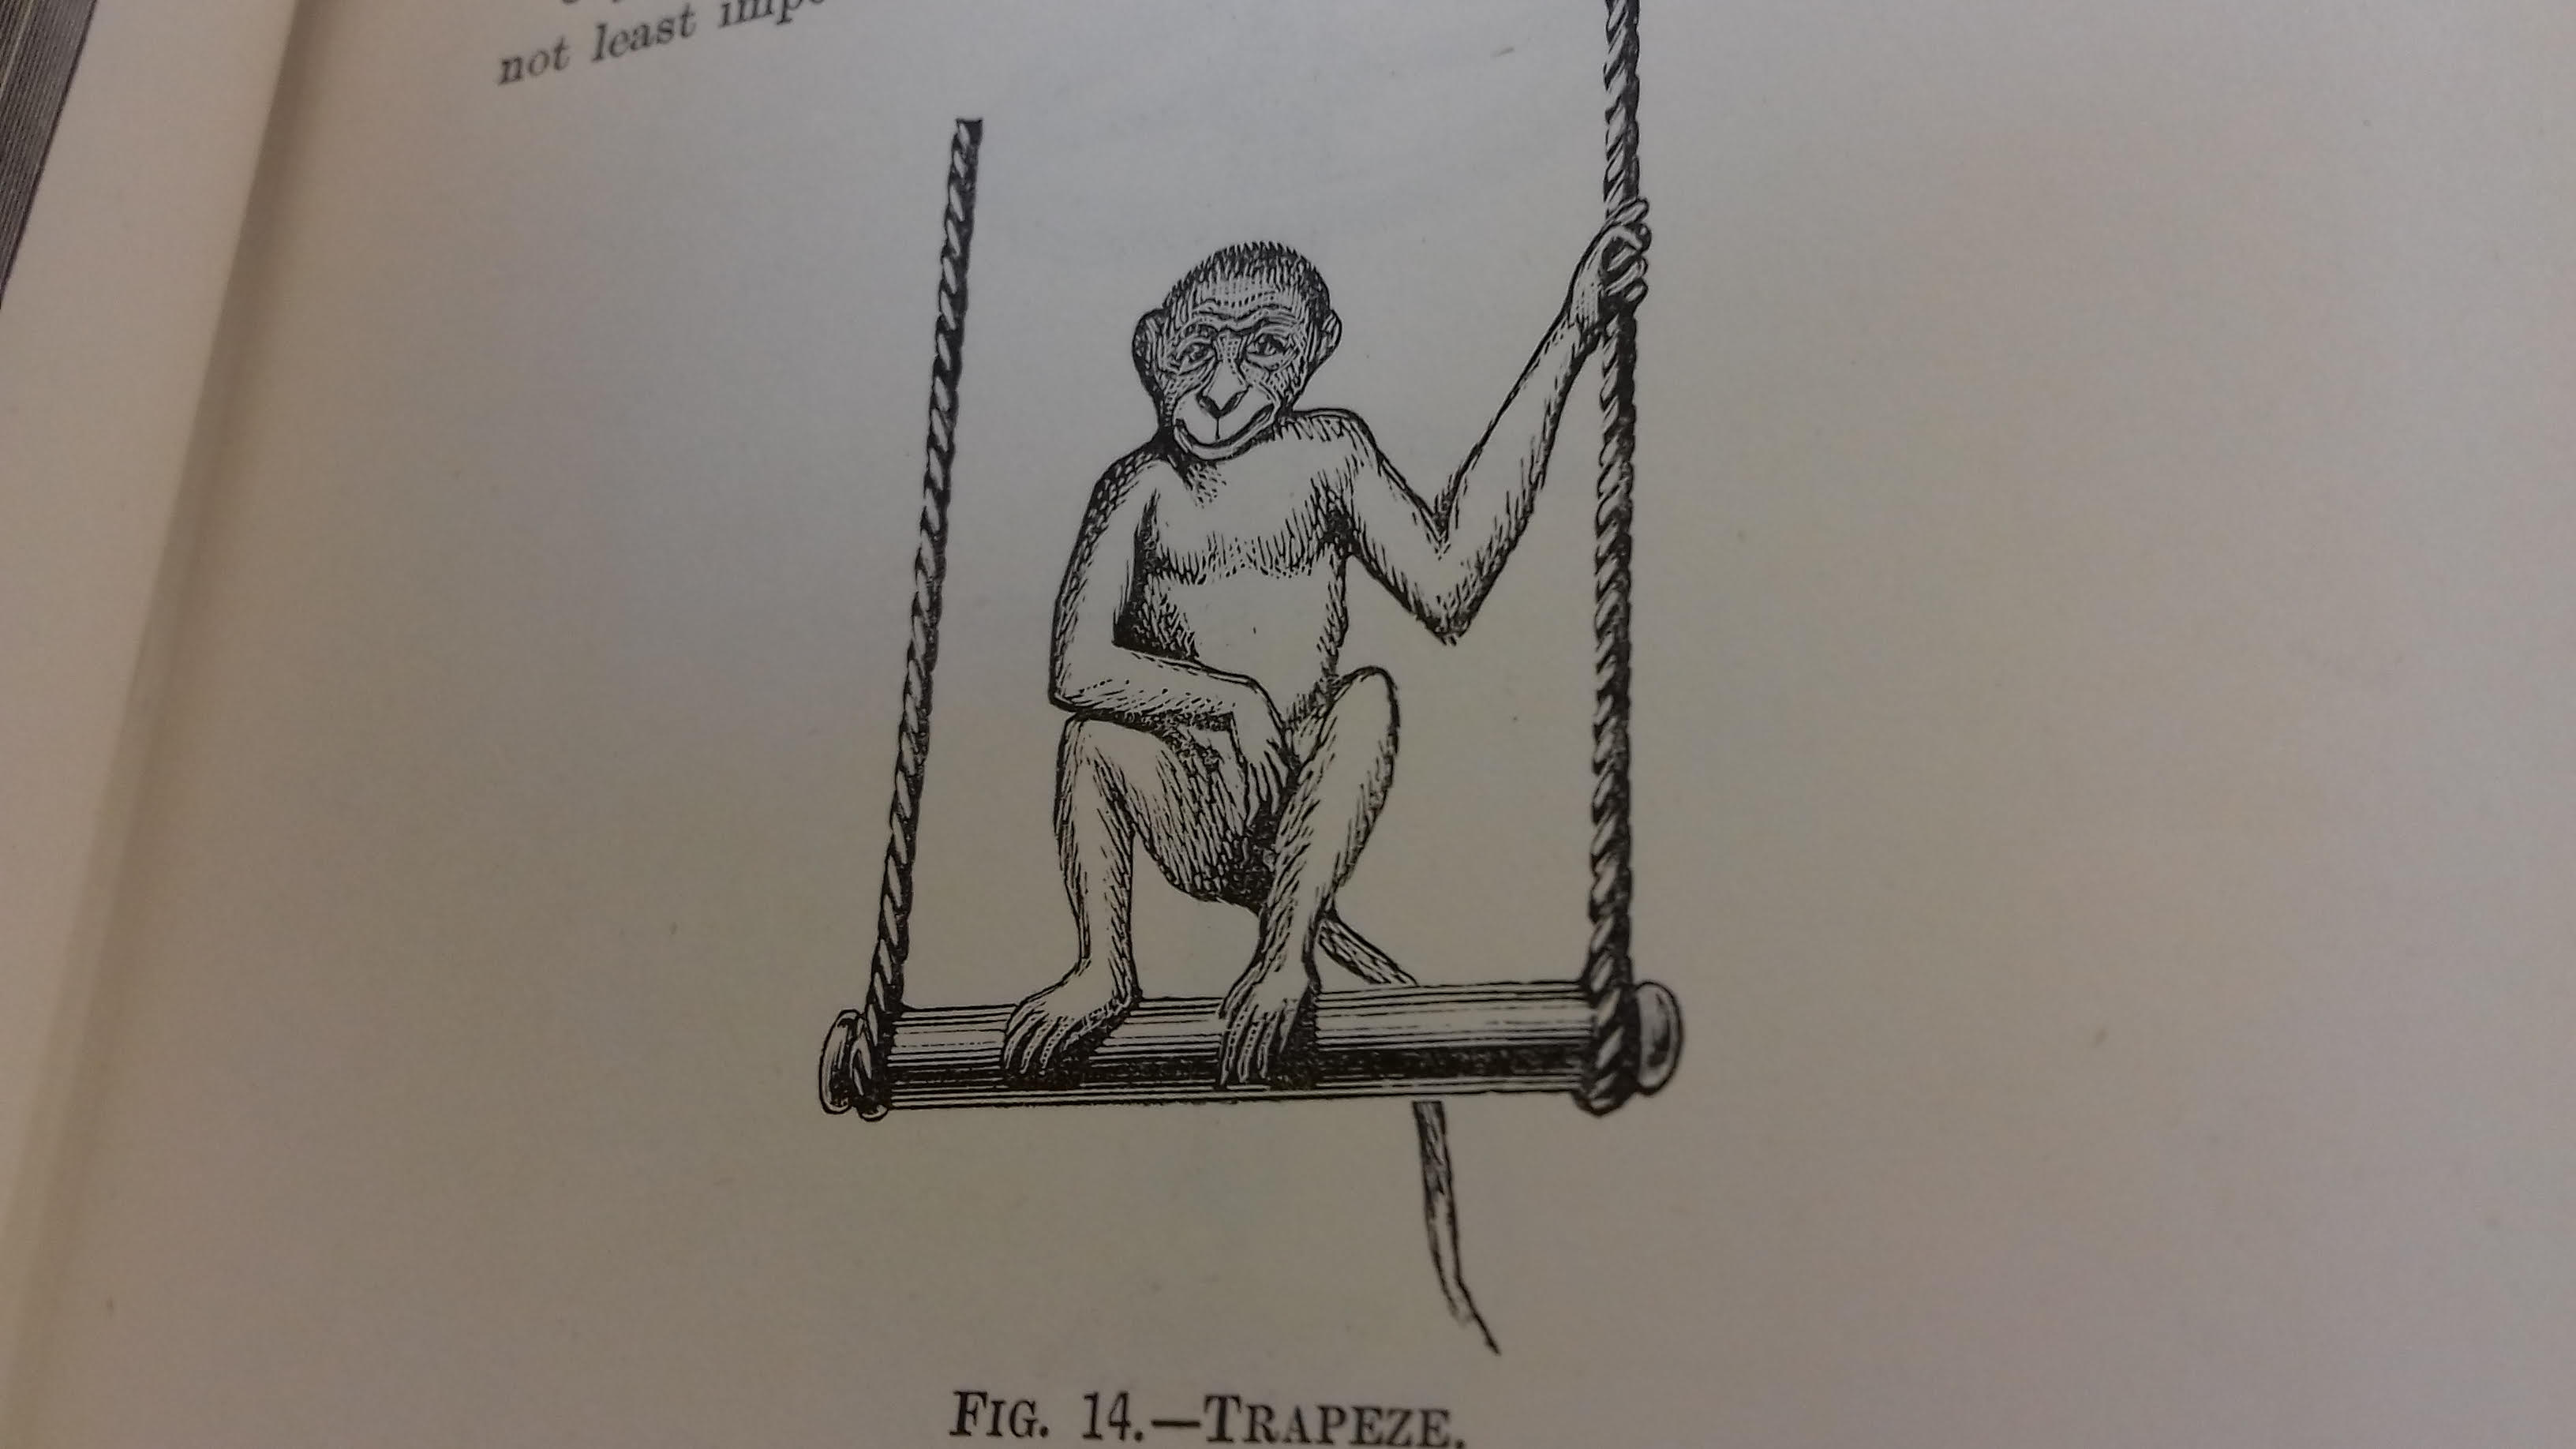 drawing of a monkey on a trapeze